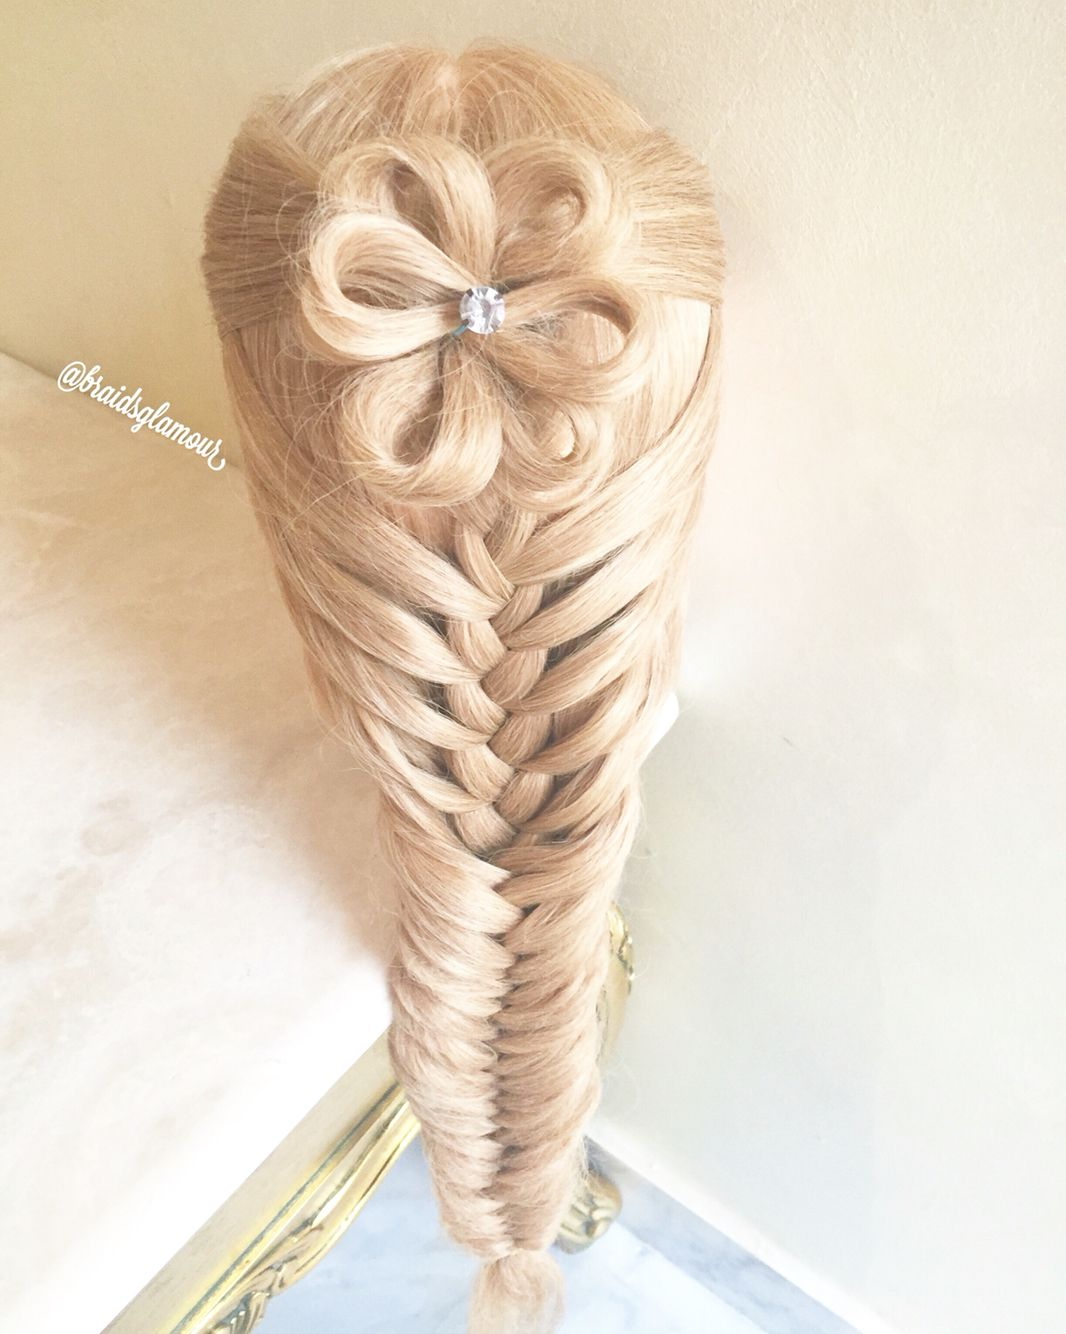 Girls updos hairstyles fishtail braids fishtail and hair style